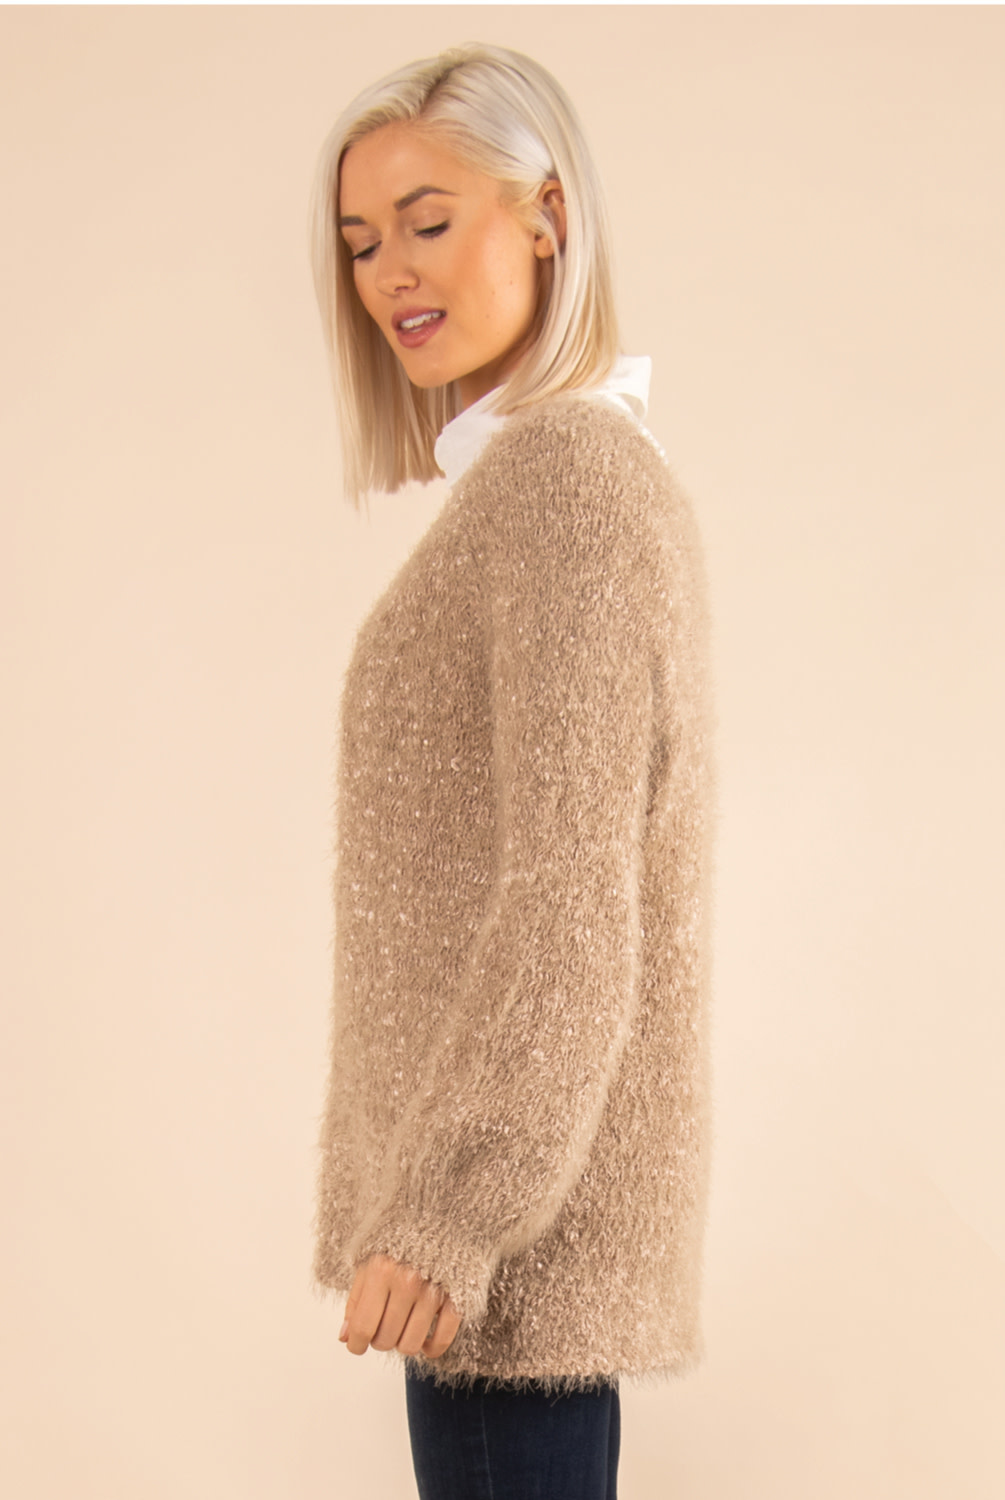 Simply Noelle Soft Angel Hair Knit Sweater